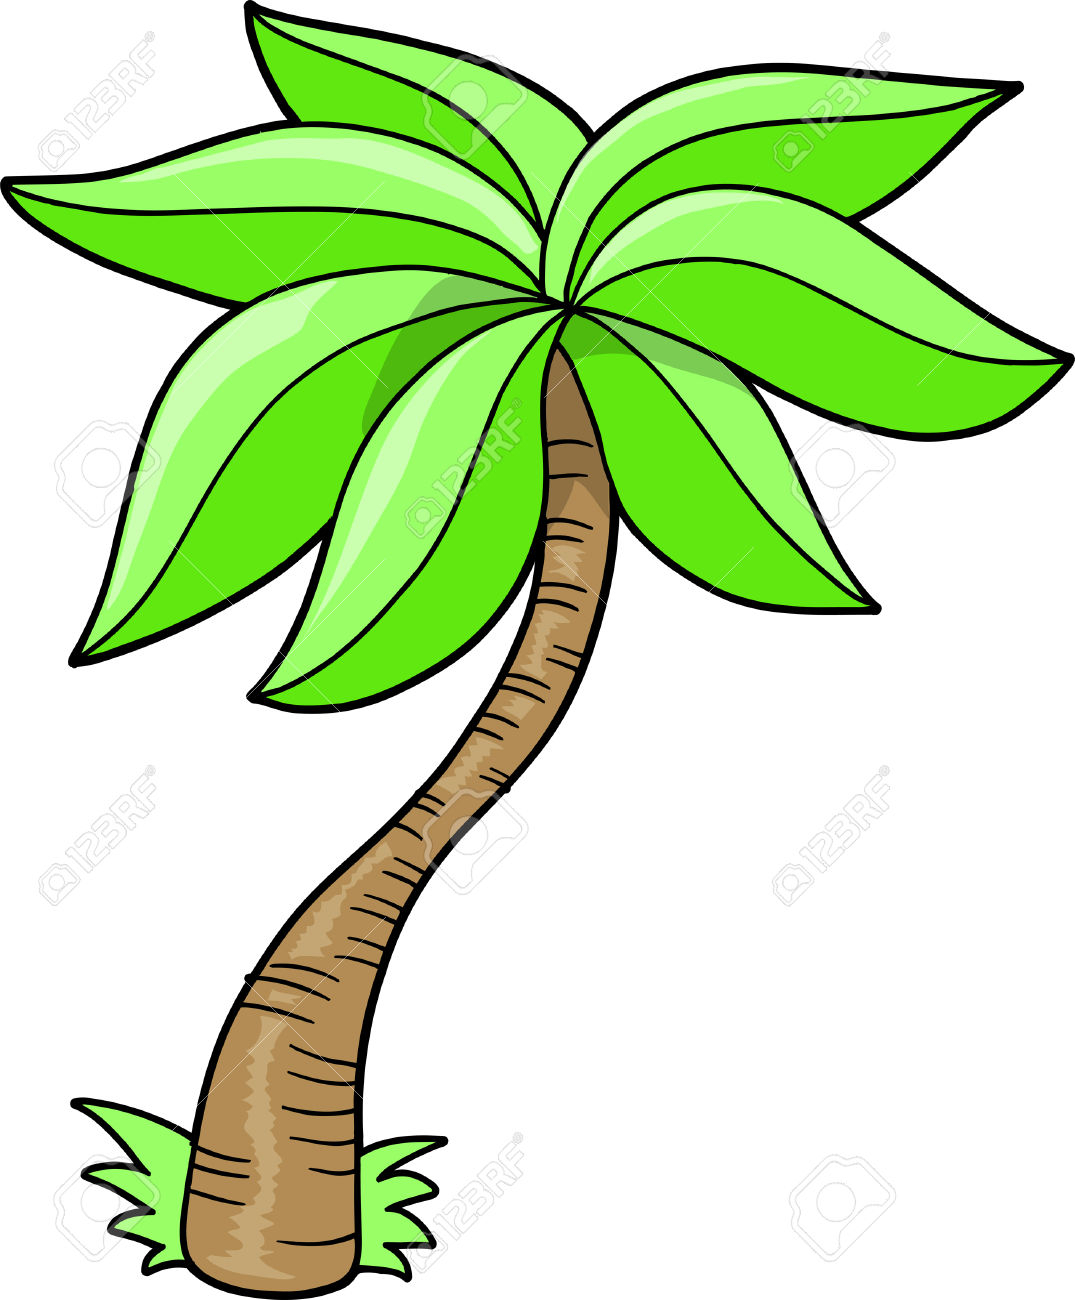 1075x1300 Palm Tree Cartoon Drawing Palm Tree Vector Illustration Royalty